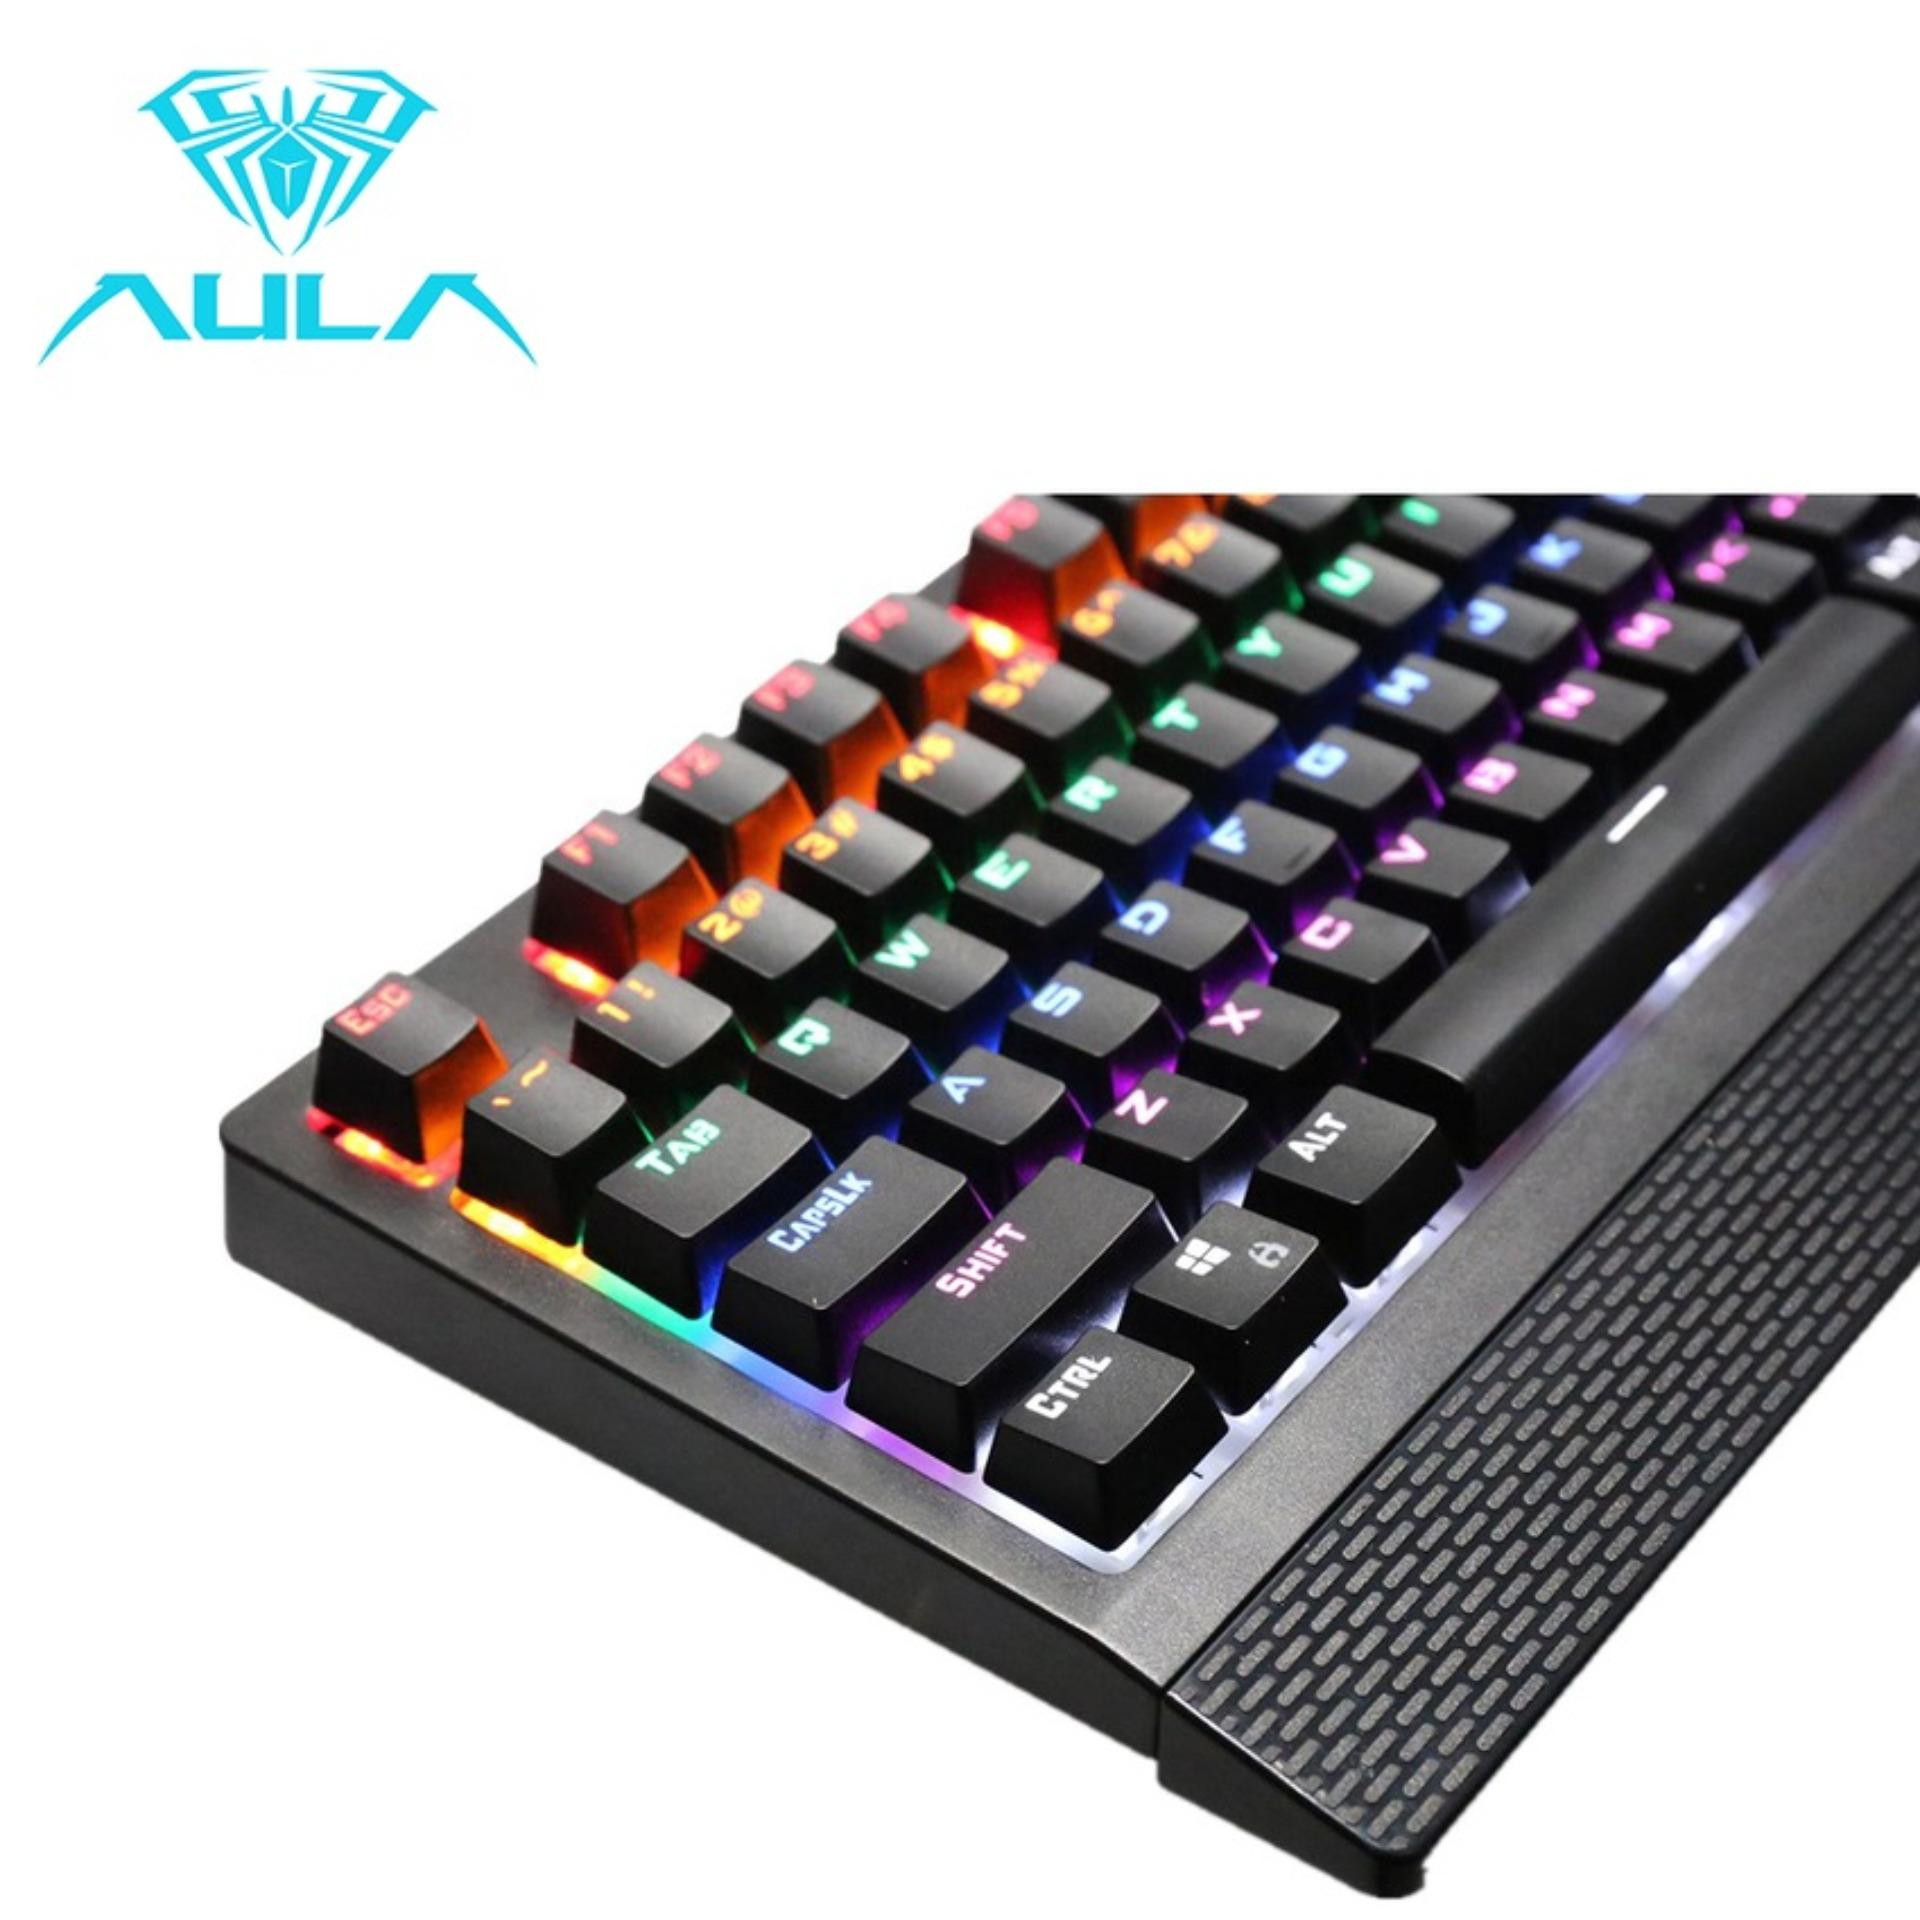 Aula Wings Of Liberty Mechanical Gaming Keyboard Blue Switch104keys Rexus Warfaction 2 In 1 Combo Mouse Rx Vr2 Partner 104keysmulticolors Rgb Hitam